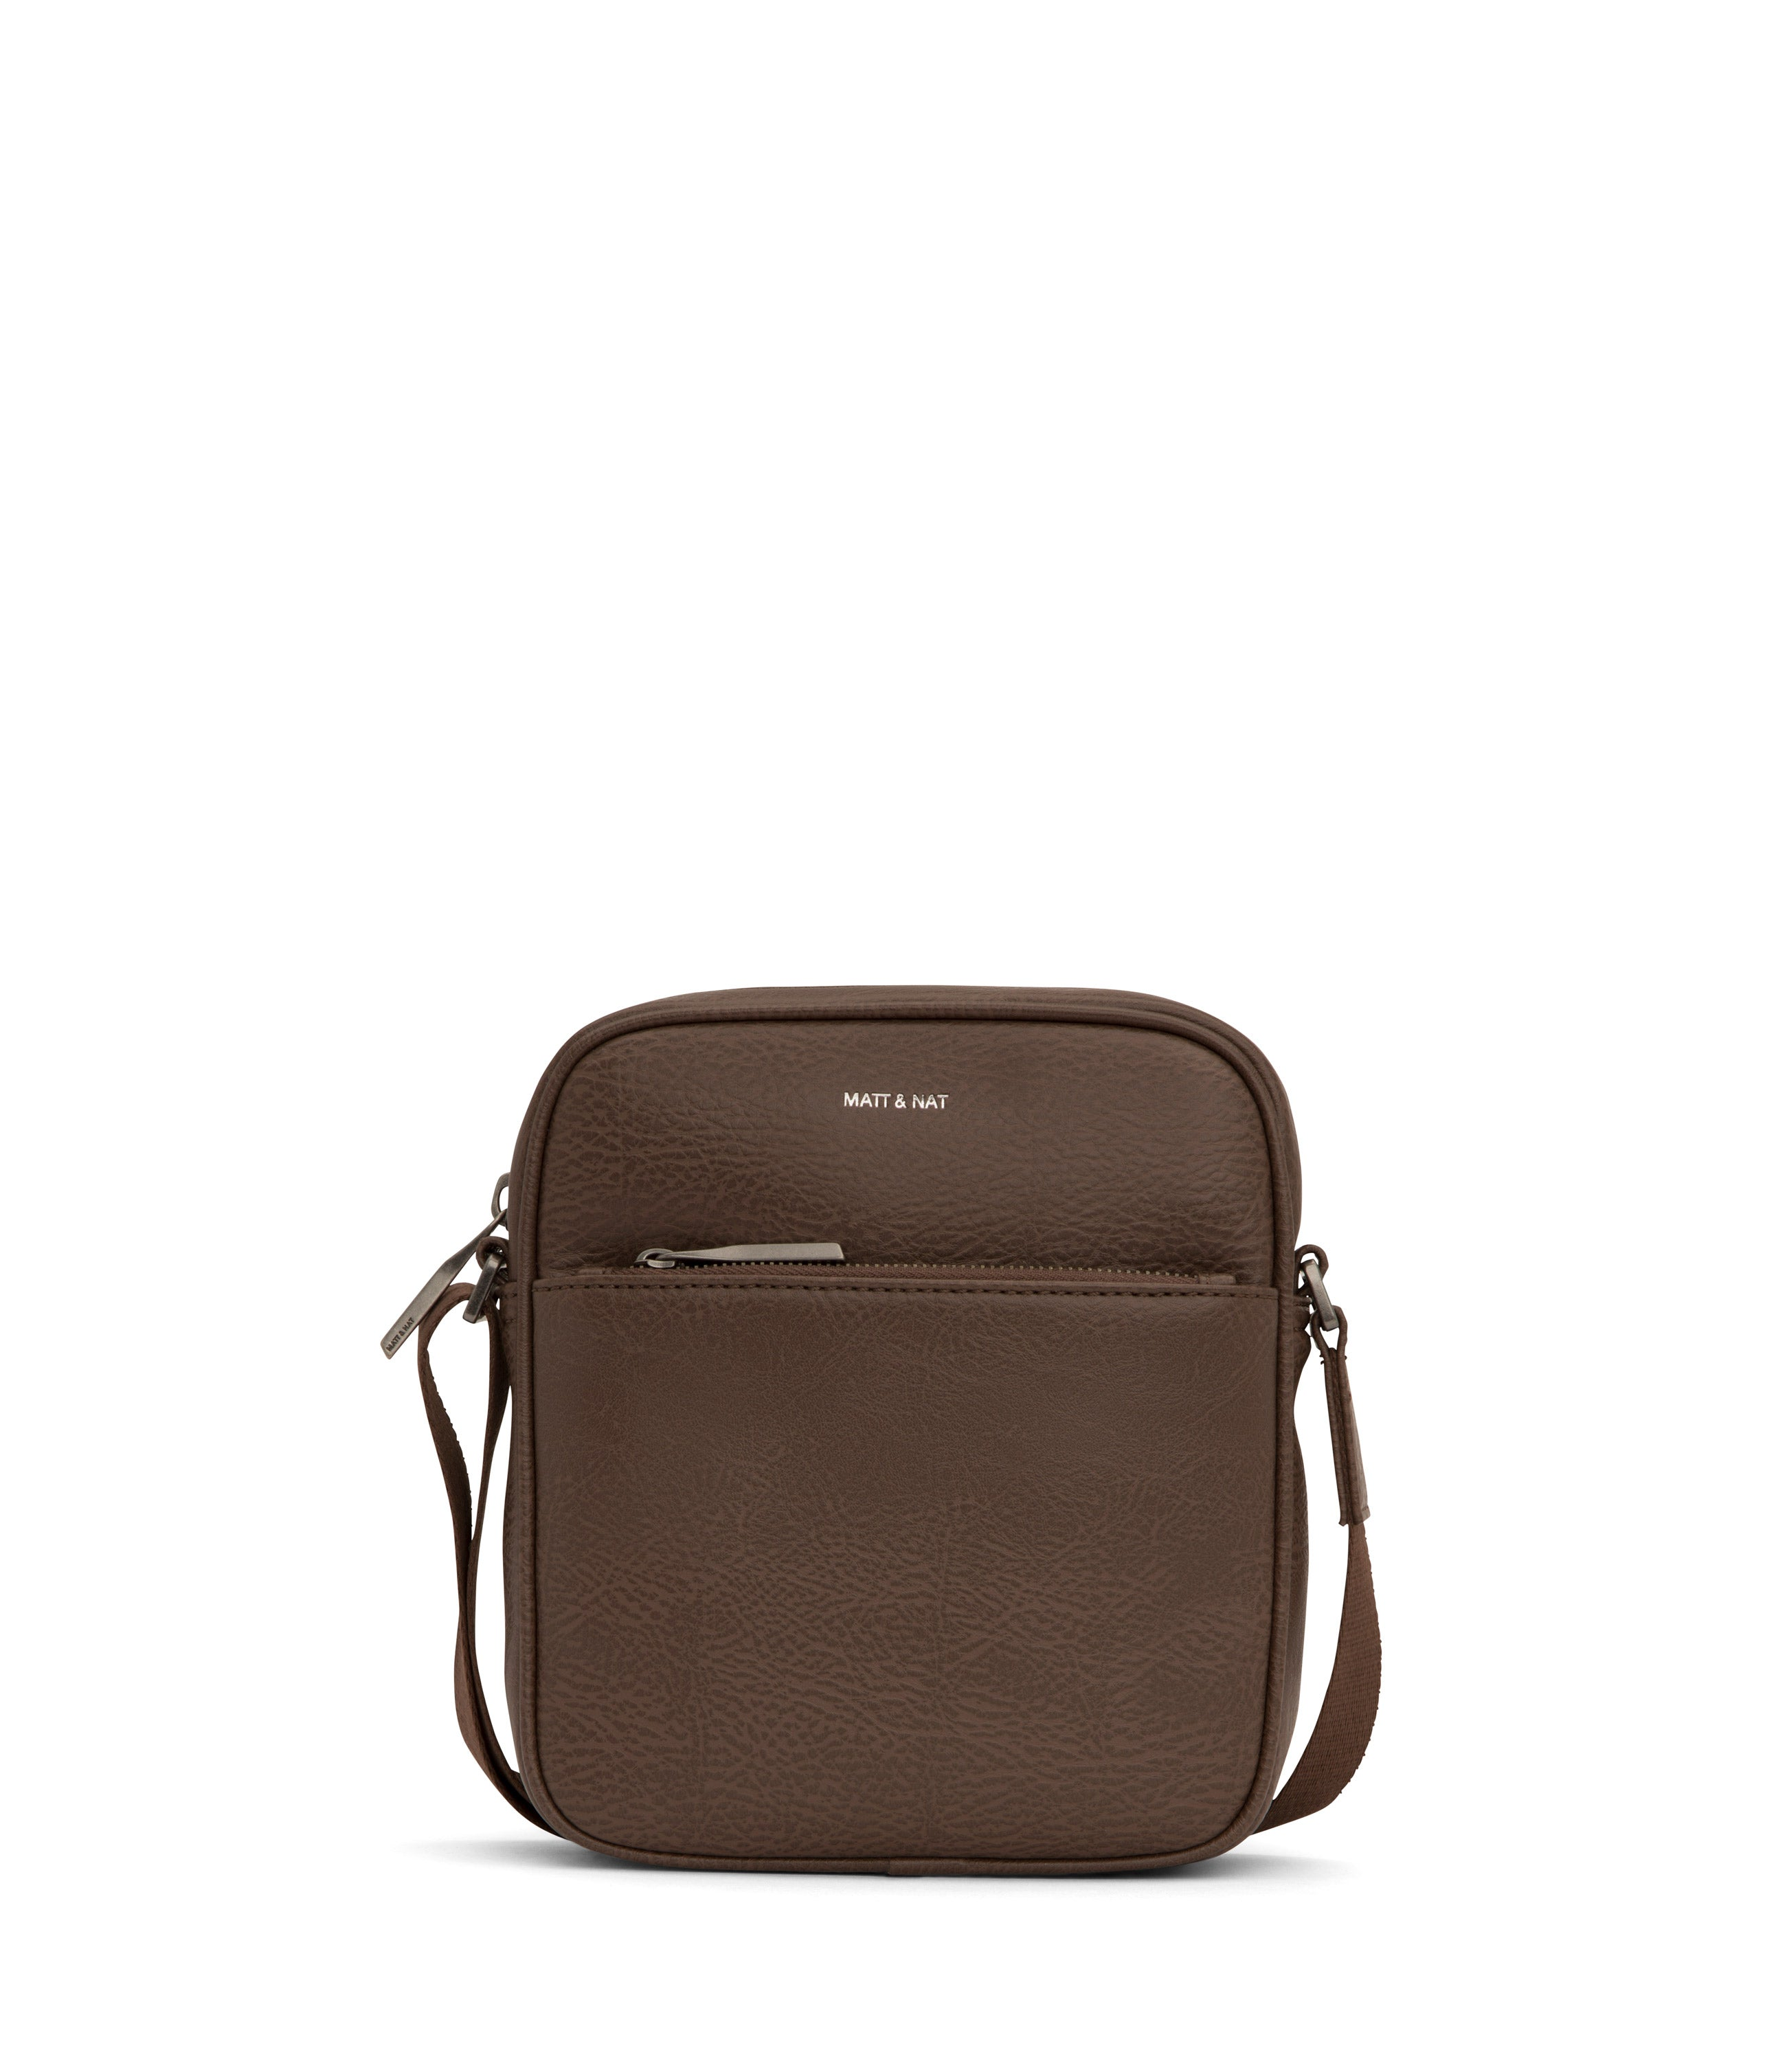 COENMINI Small Crossbody Bag